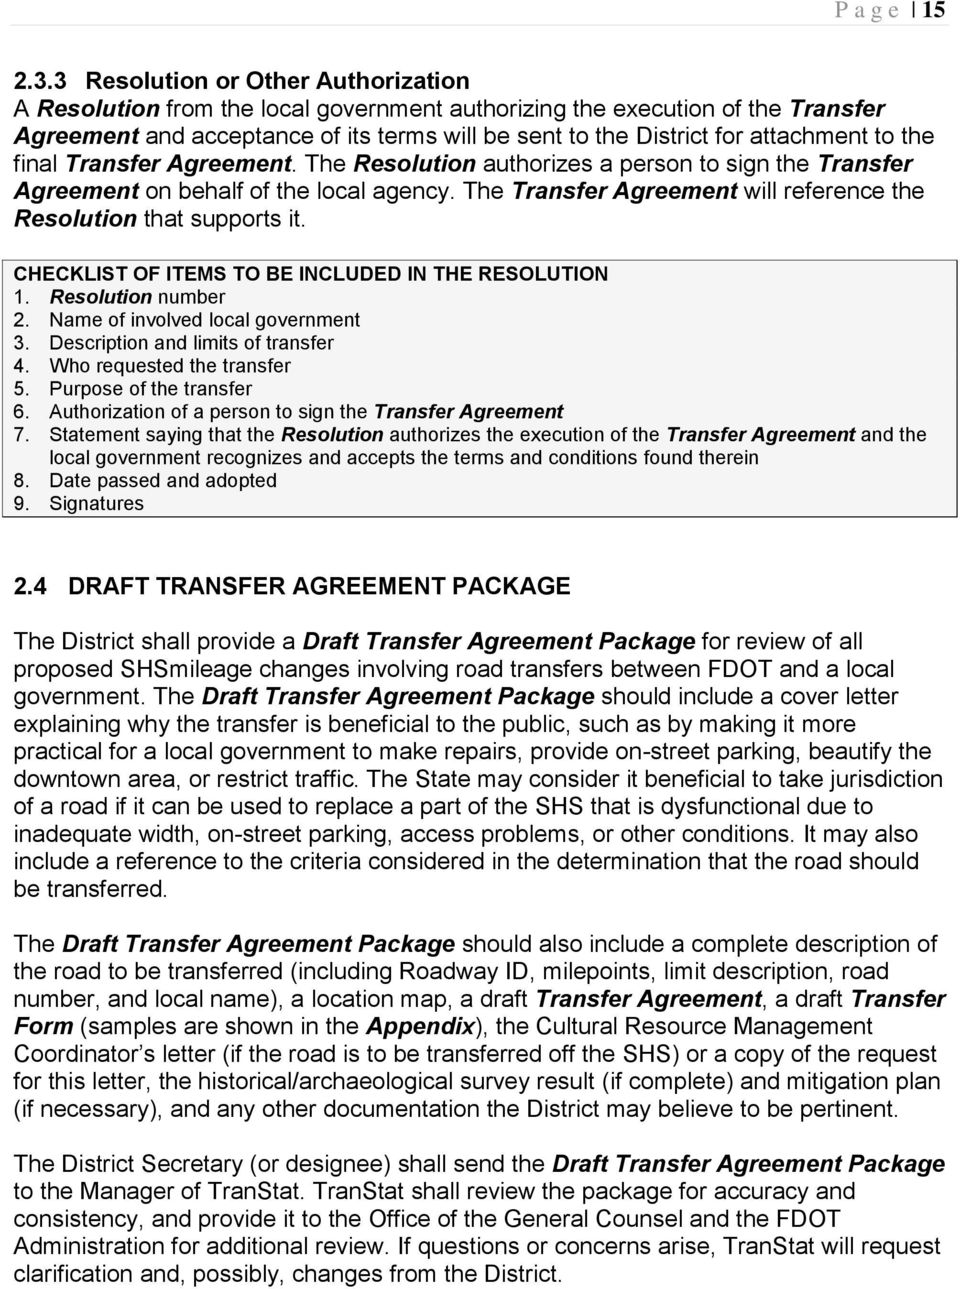 to the final Transfer Agreement. The Resolution authorizes a person to sign the Transfer Agreement on behalf of the local agency. The Transfer Agreement will reference the Resolution that supports it.